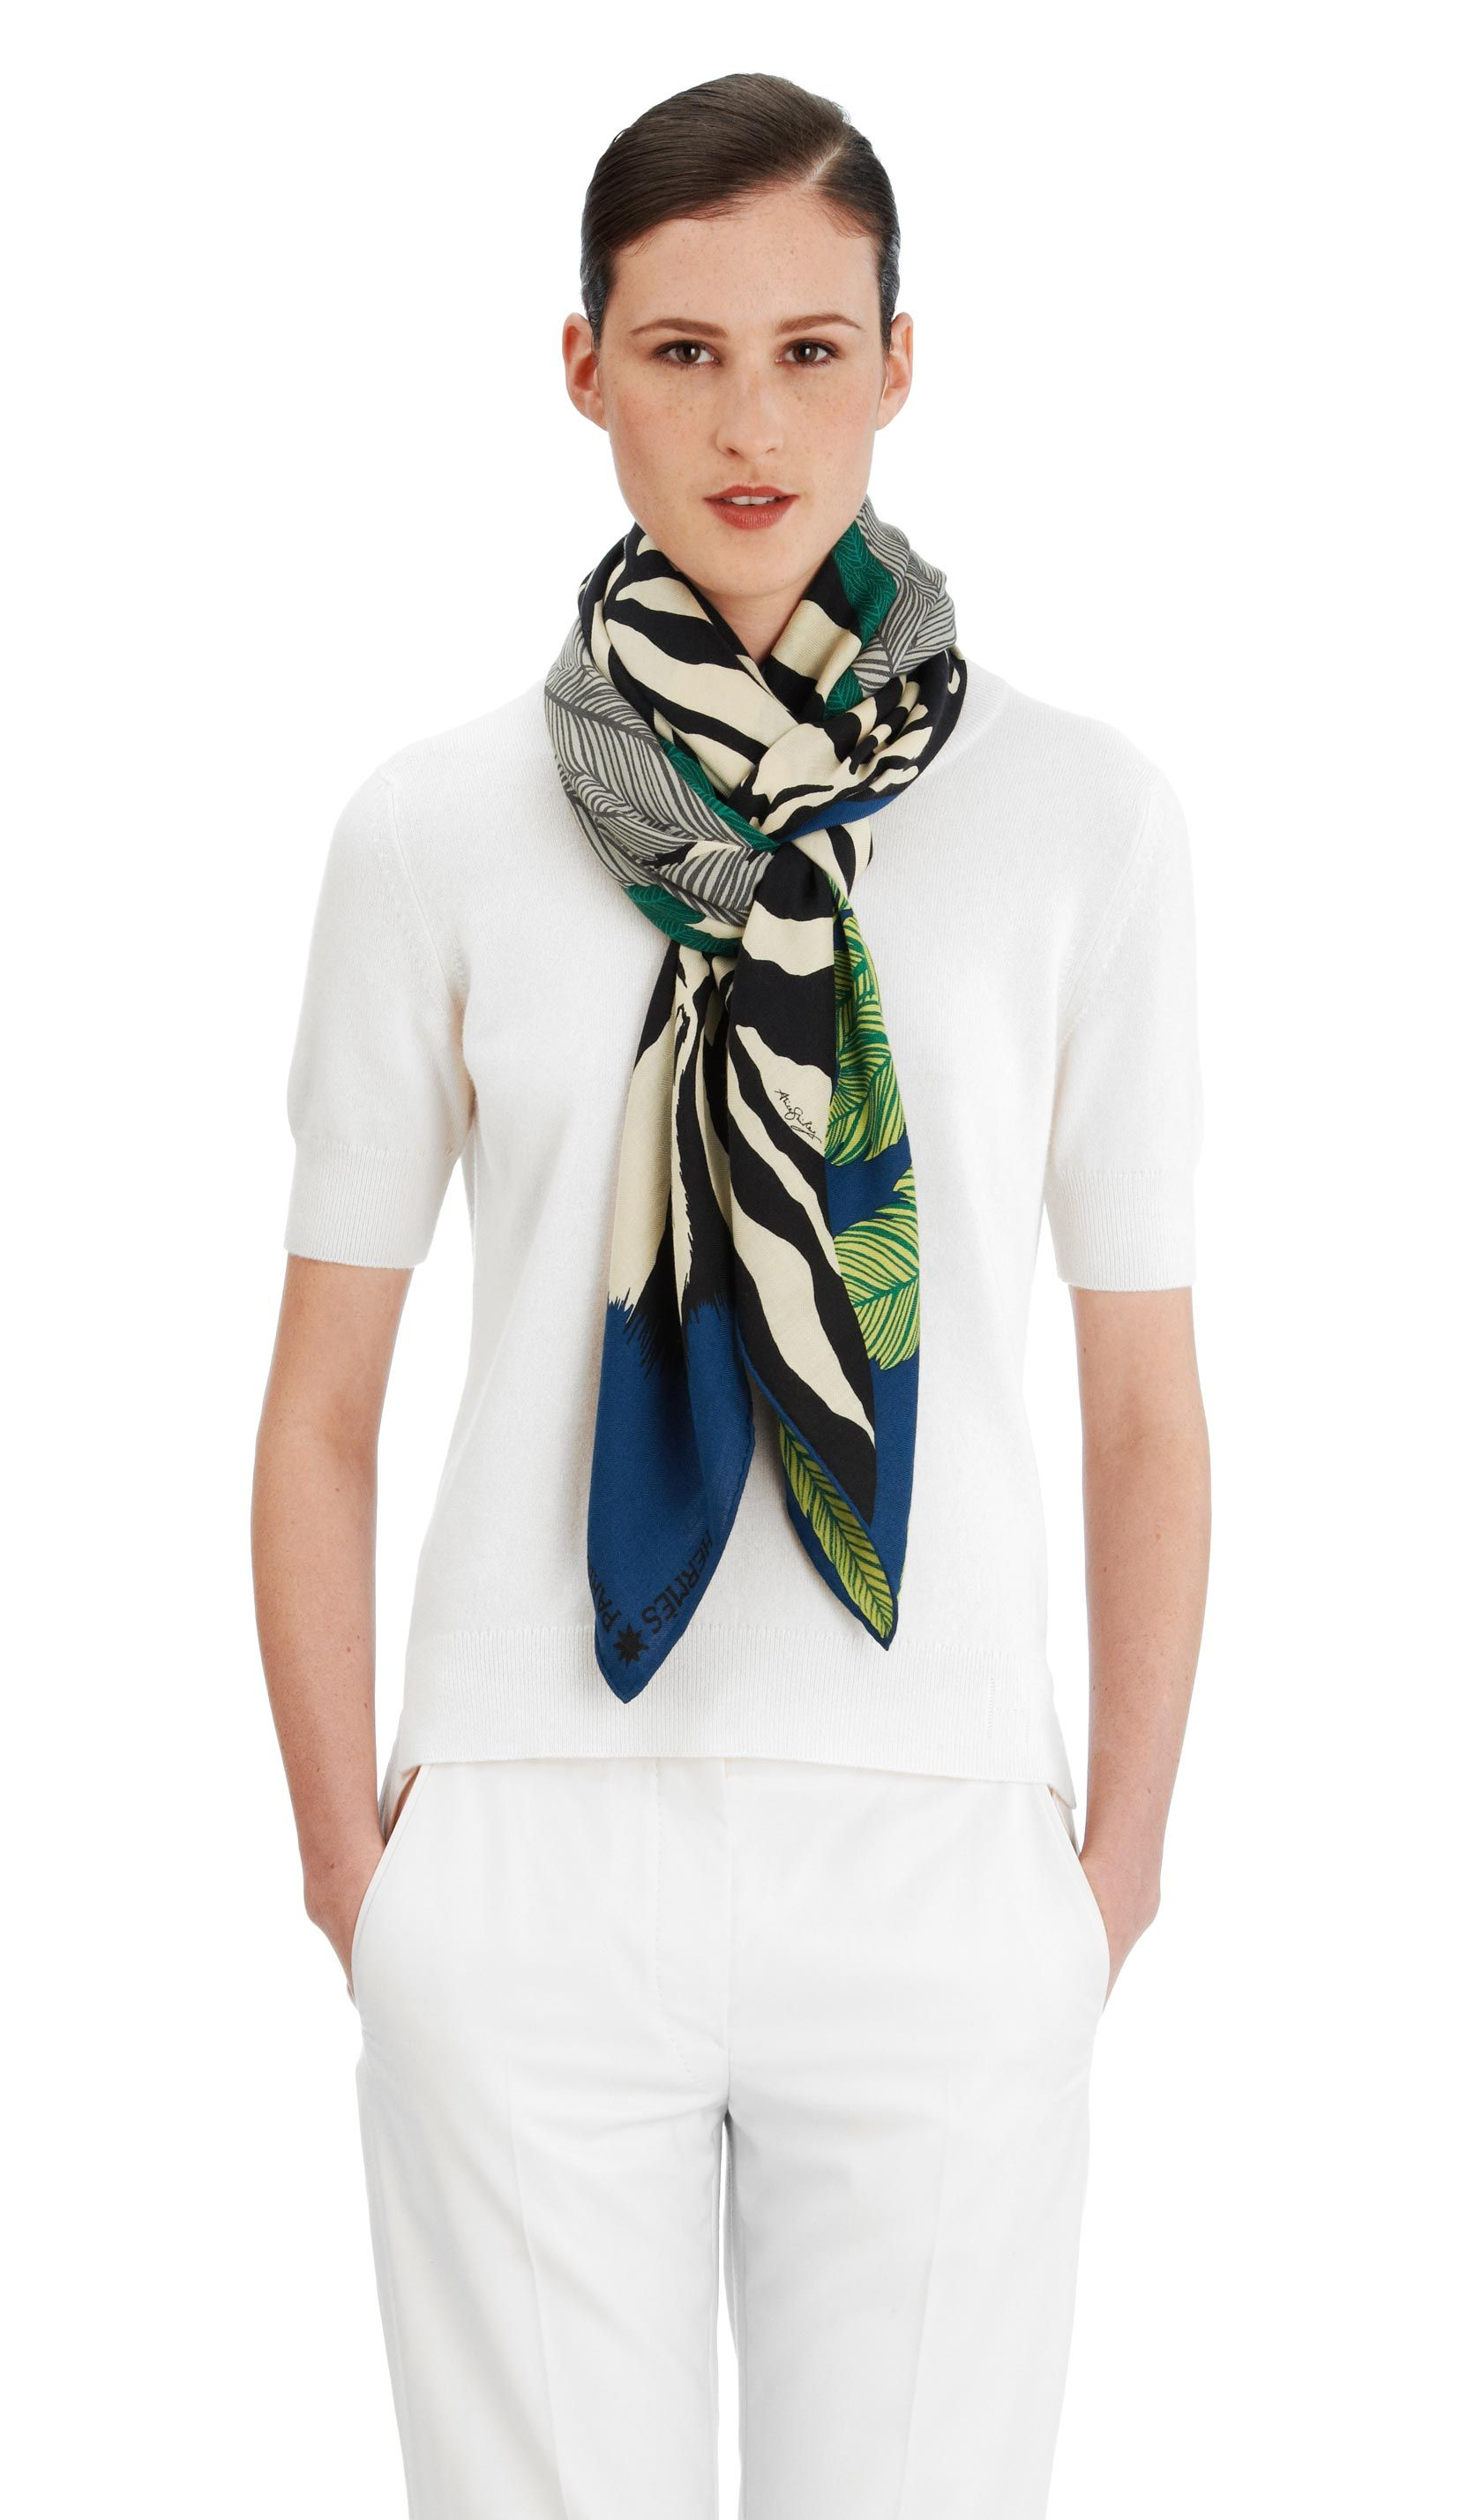 Cashmere Silk Scarf - Shall We Dance by VIDA VIDA nUgSNC